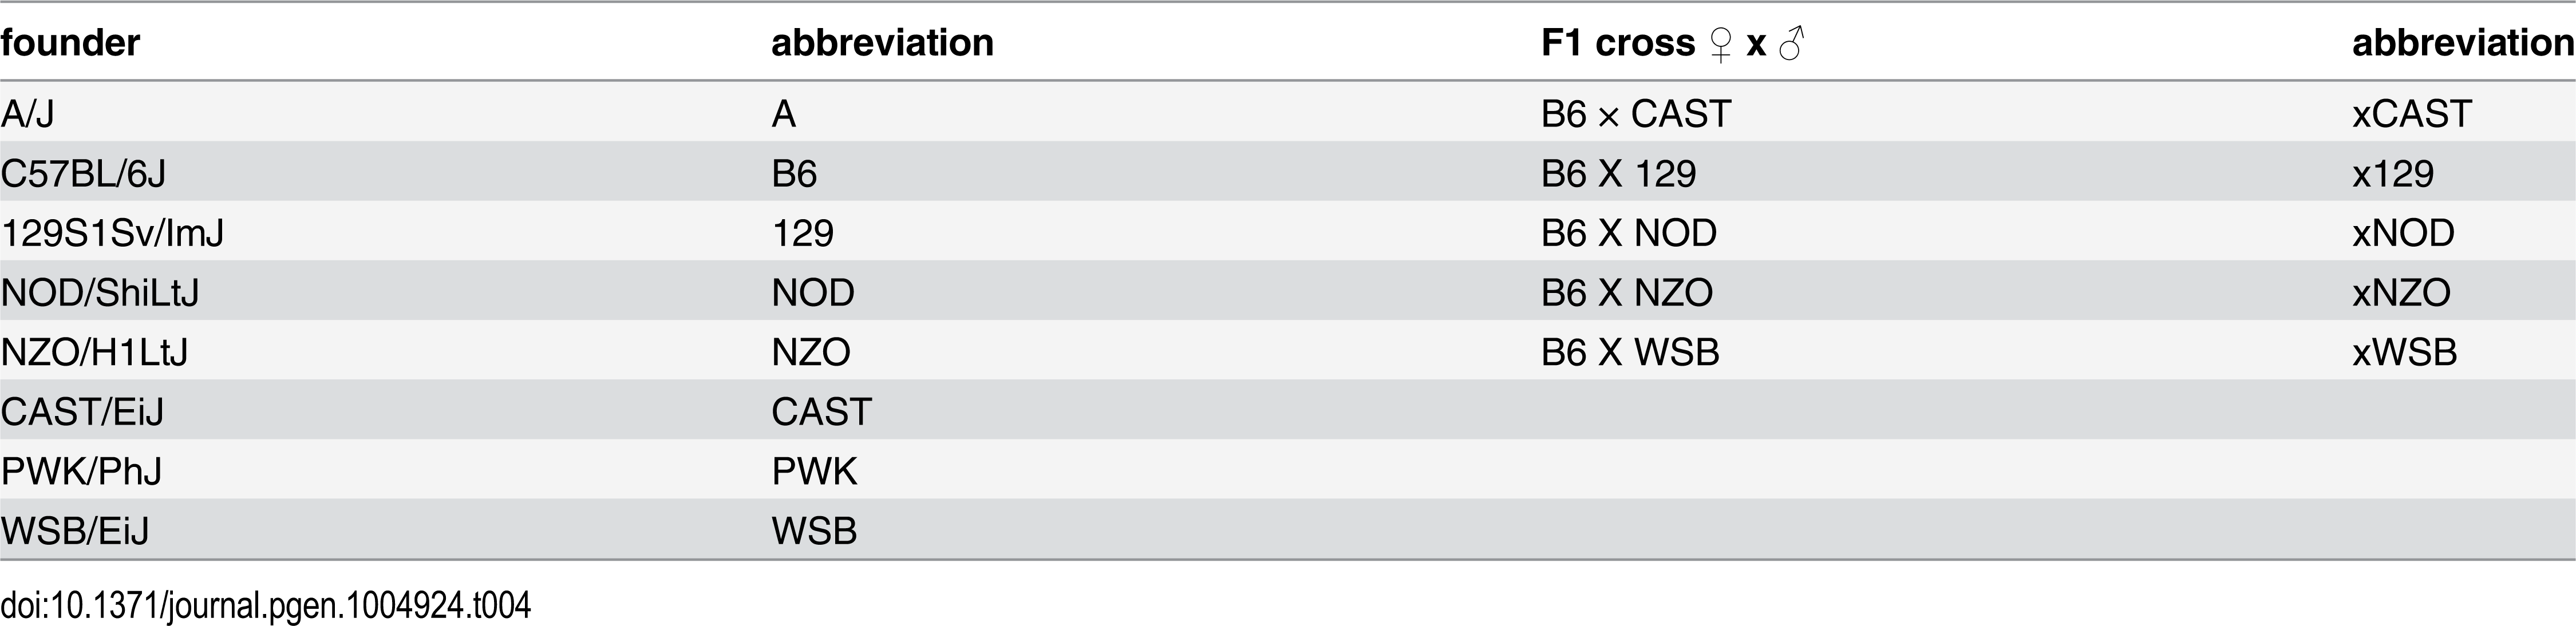 Abbreviations for founder and F1 strain identities.